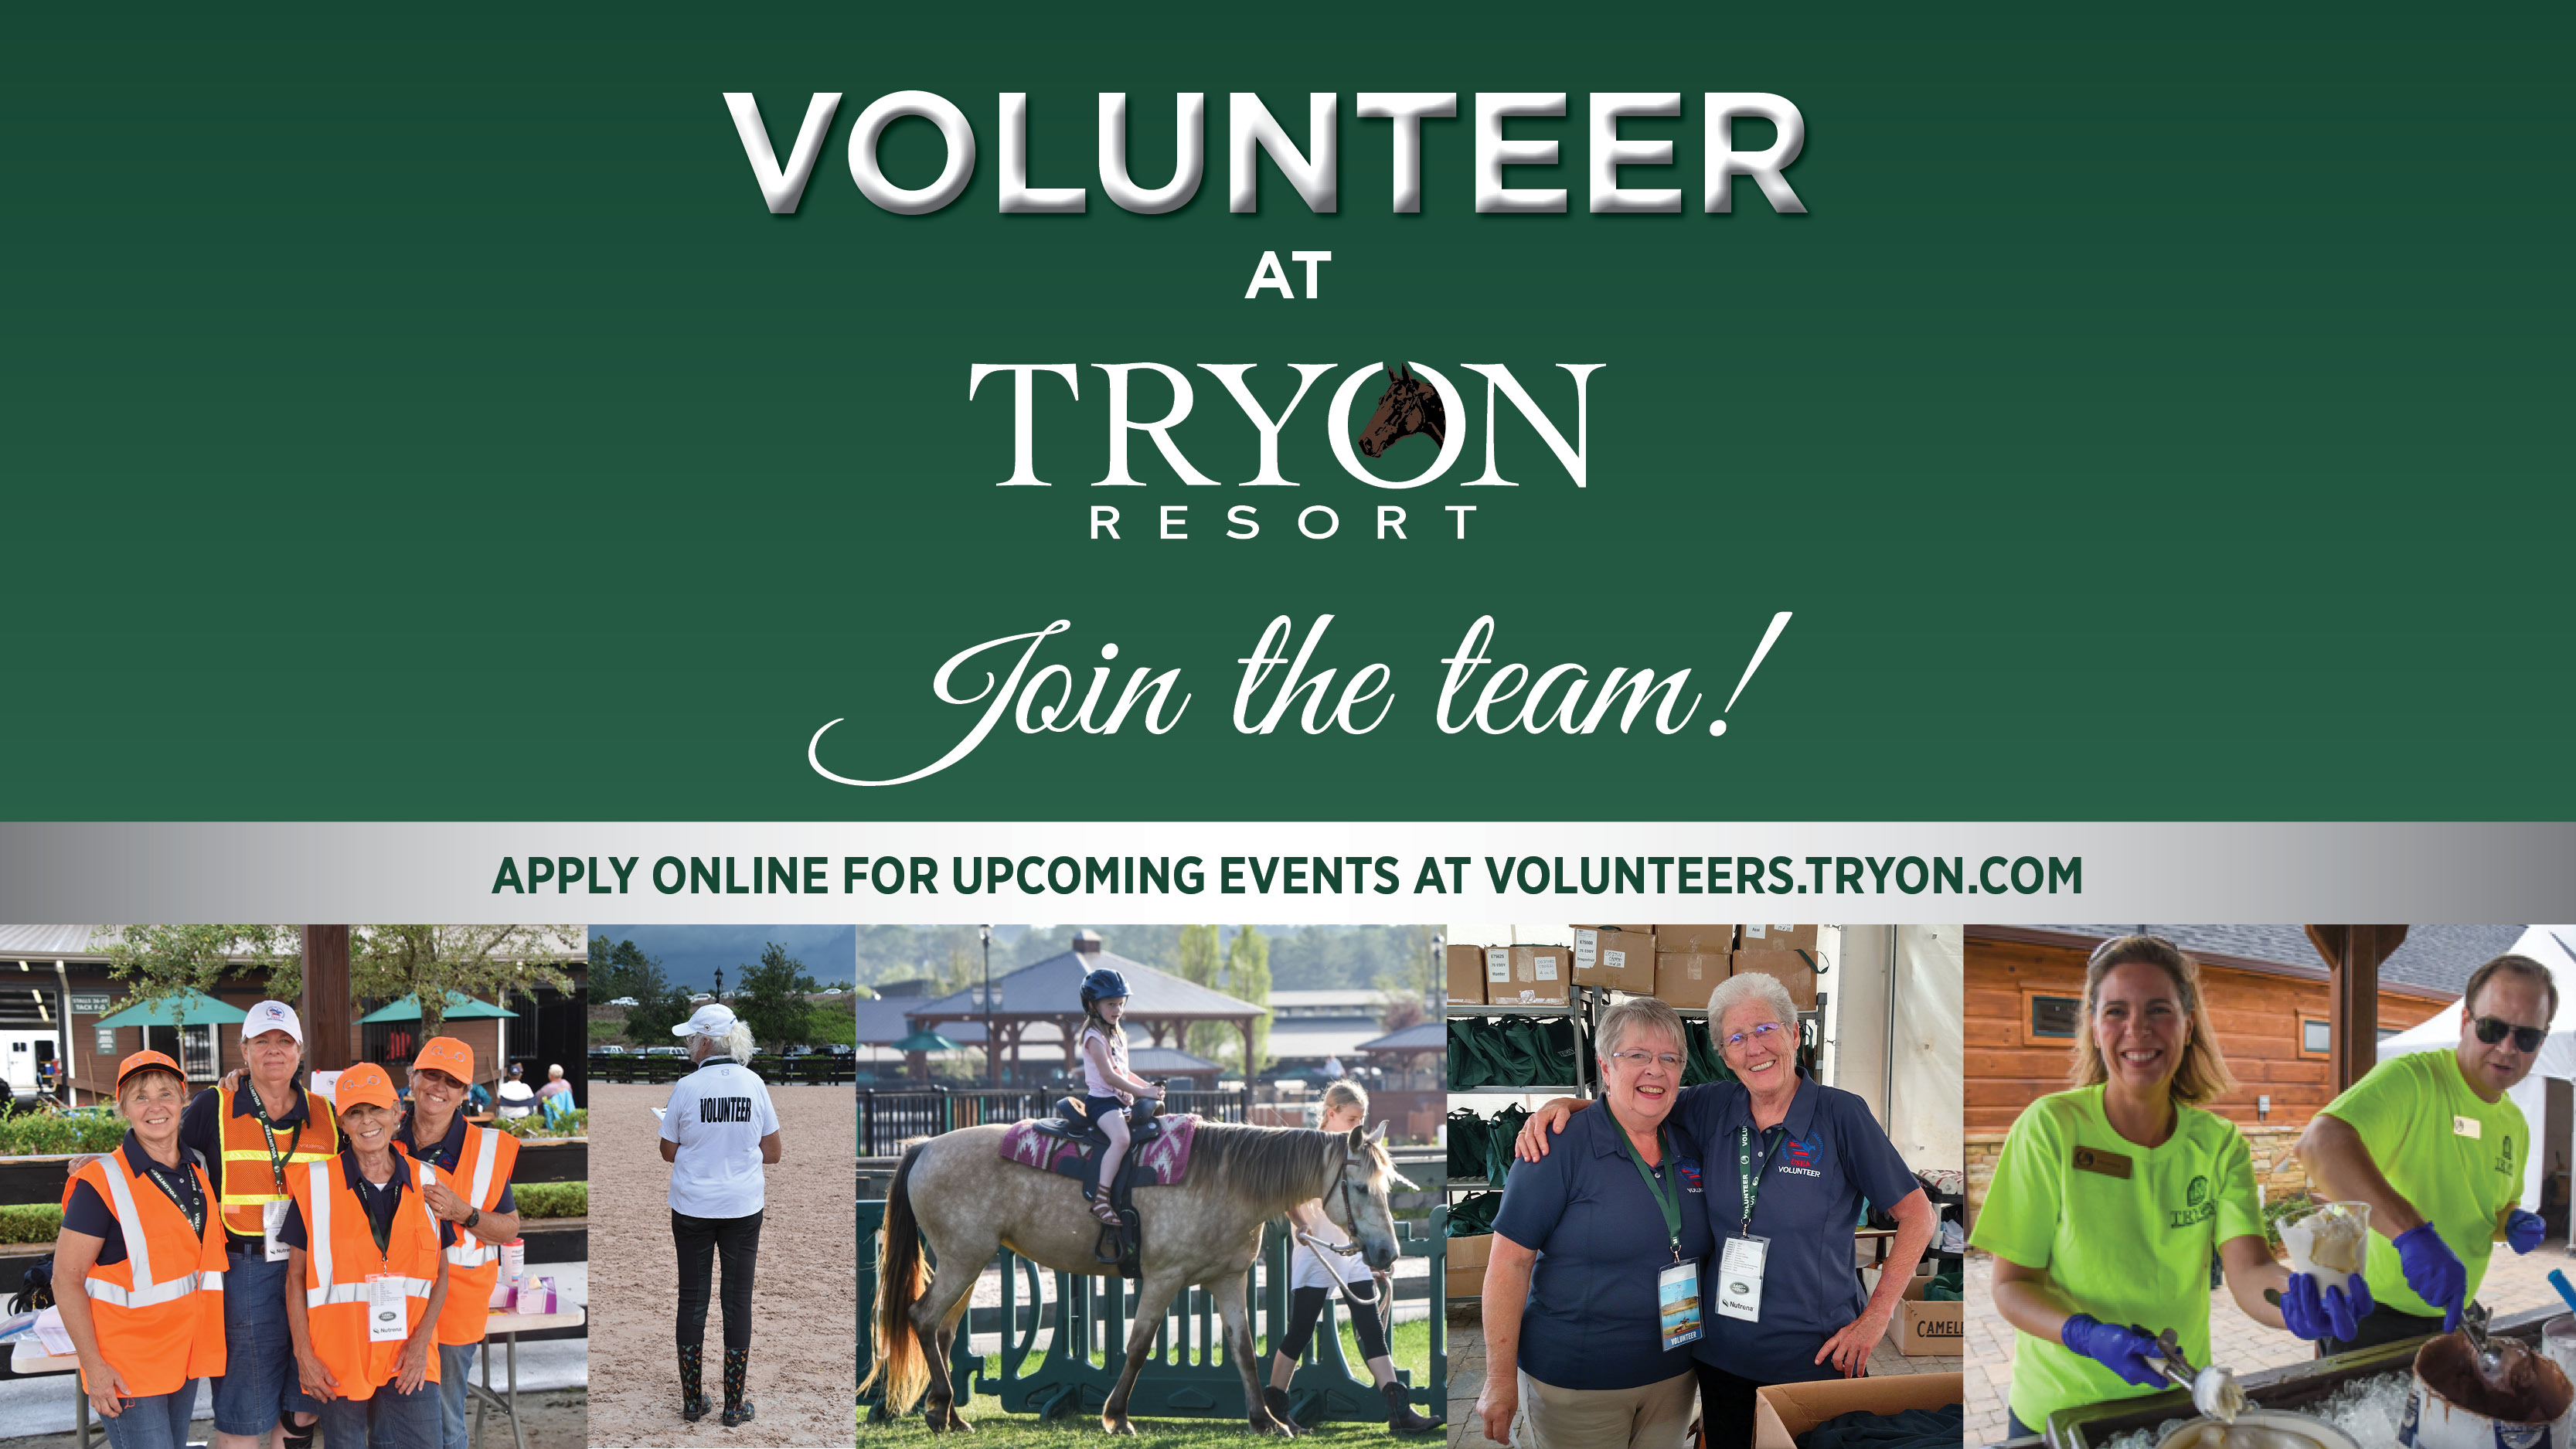 We need YOU! Click to Learn About Volunteering at Tryon Resort!